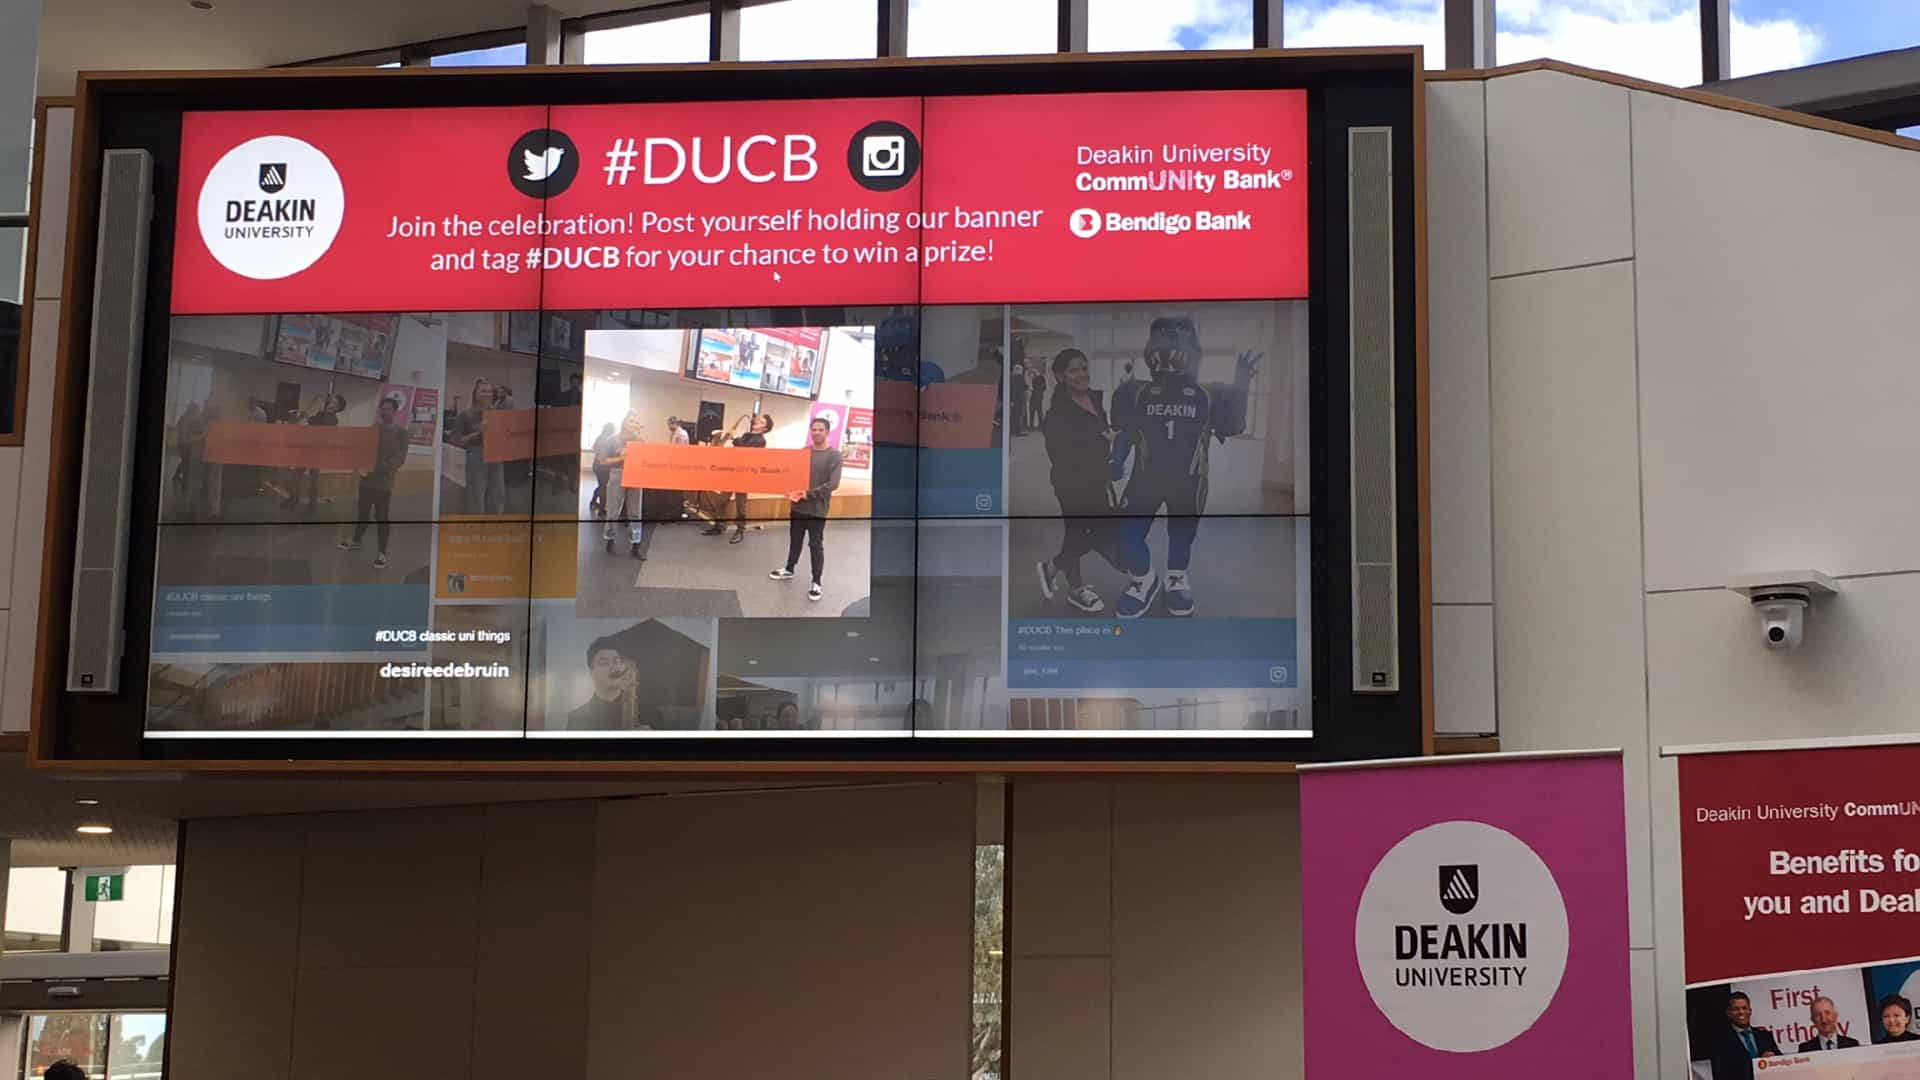 Advertise Me - Social Wall Deakin University Events Header